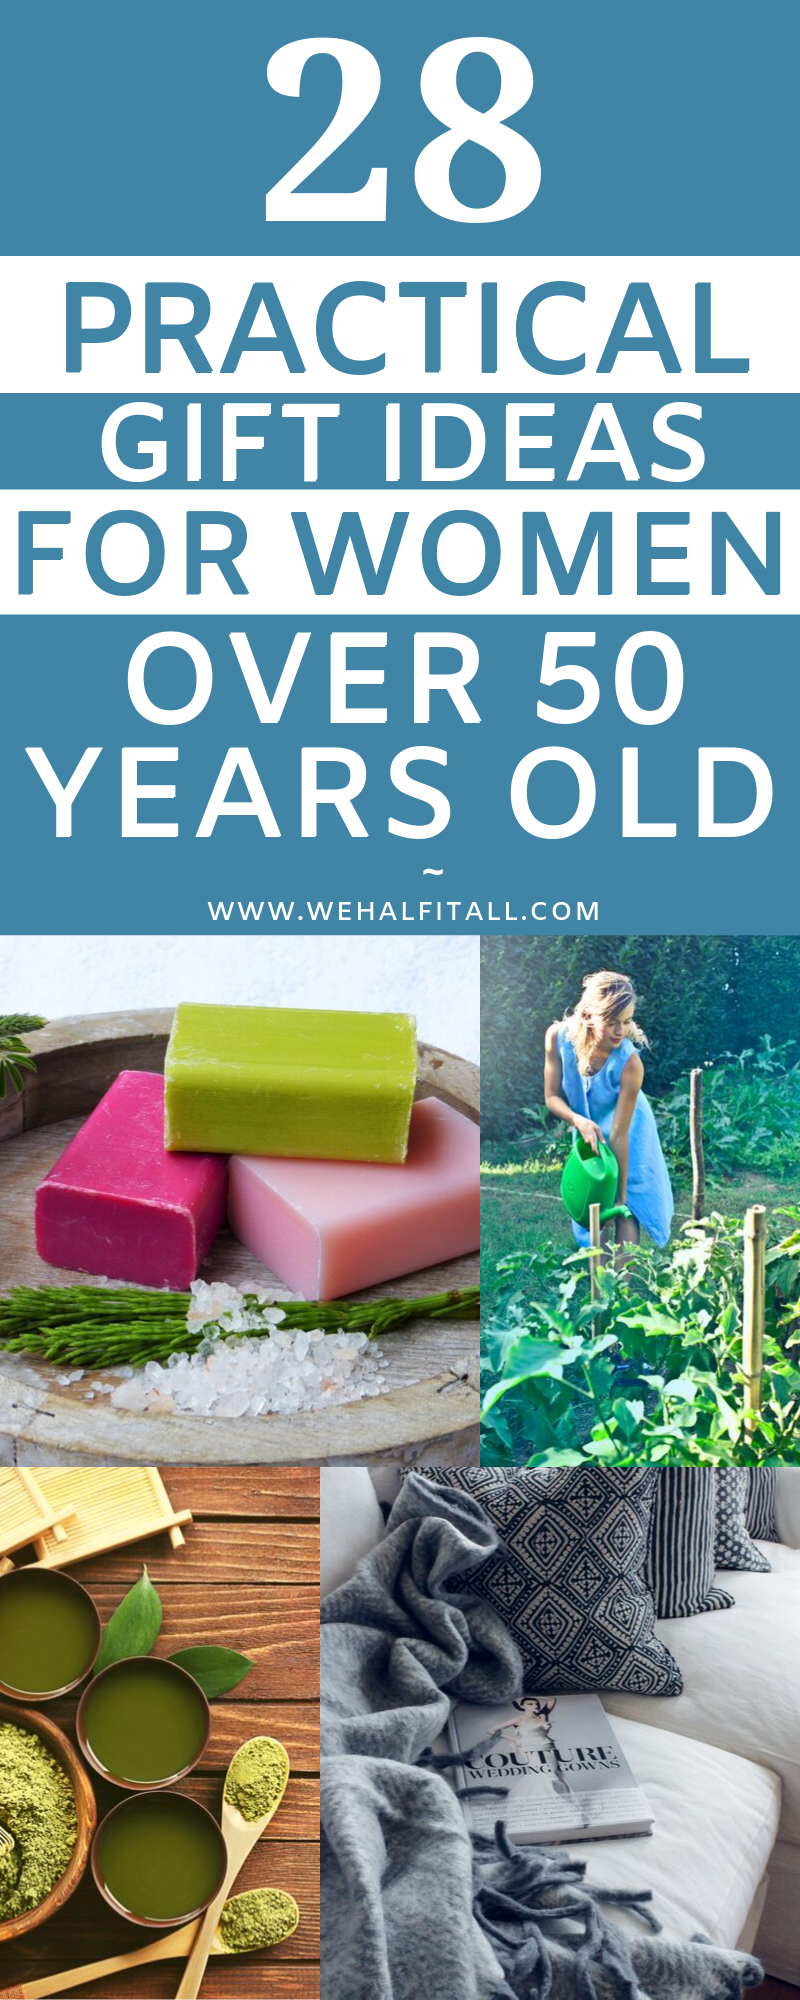 28 Practical Gift Ideas For Women Over 50 Years Old 50th